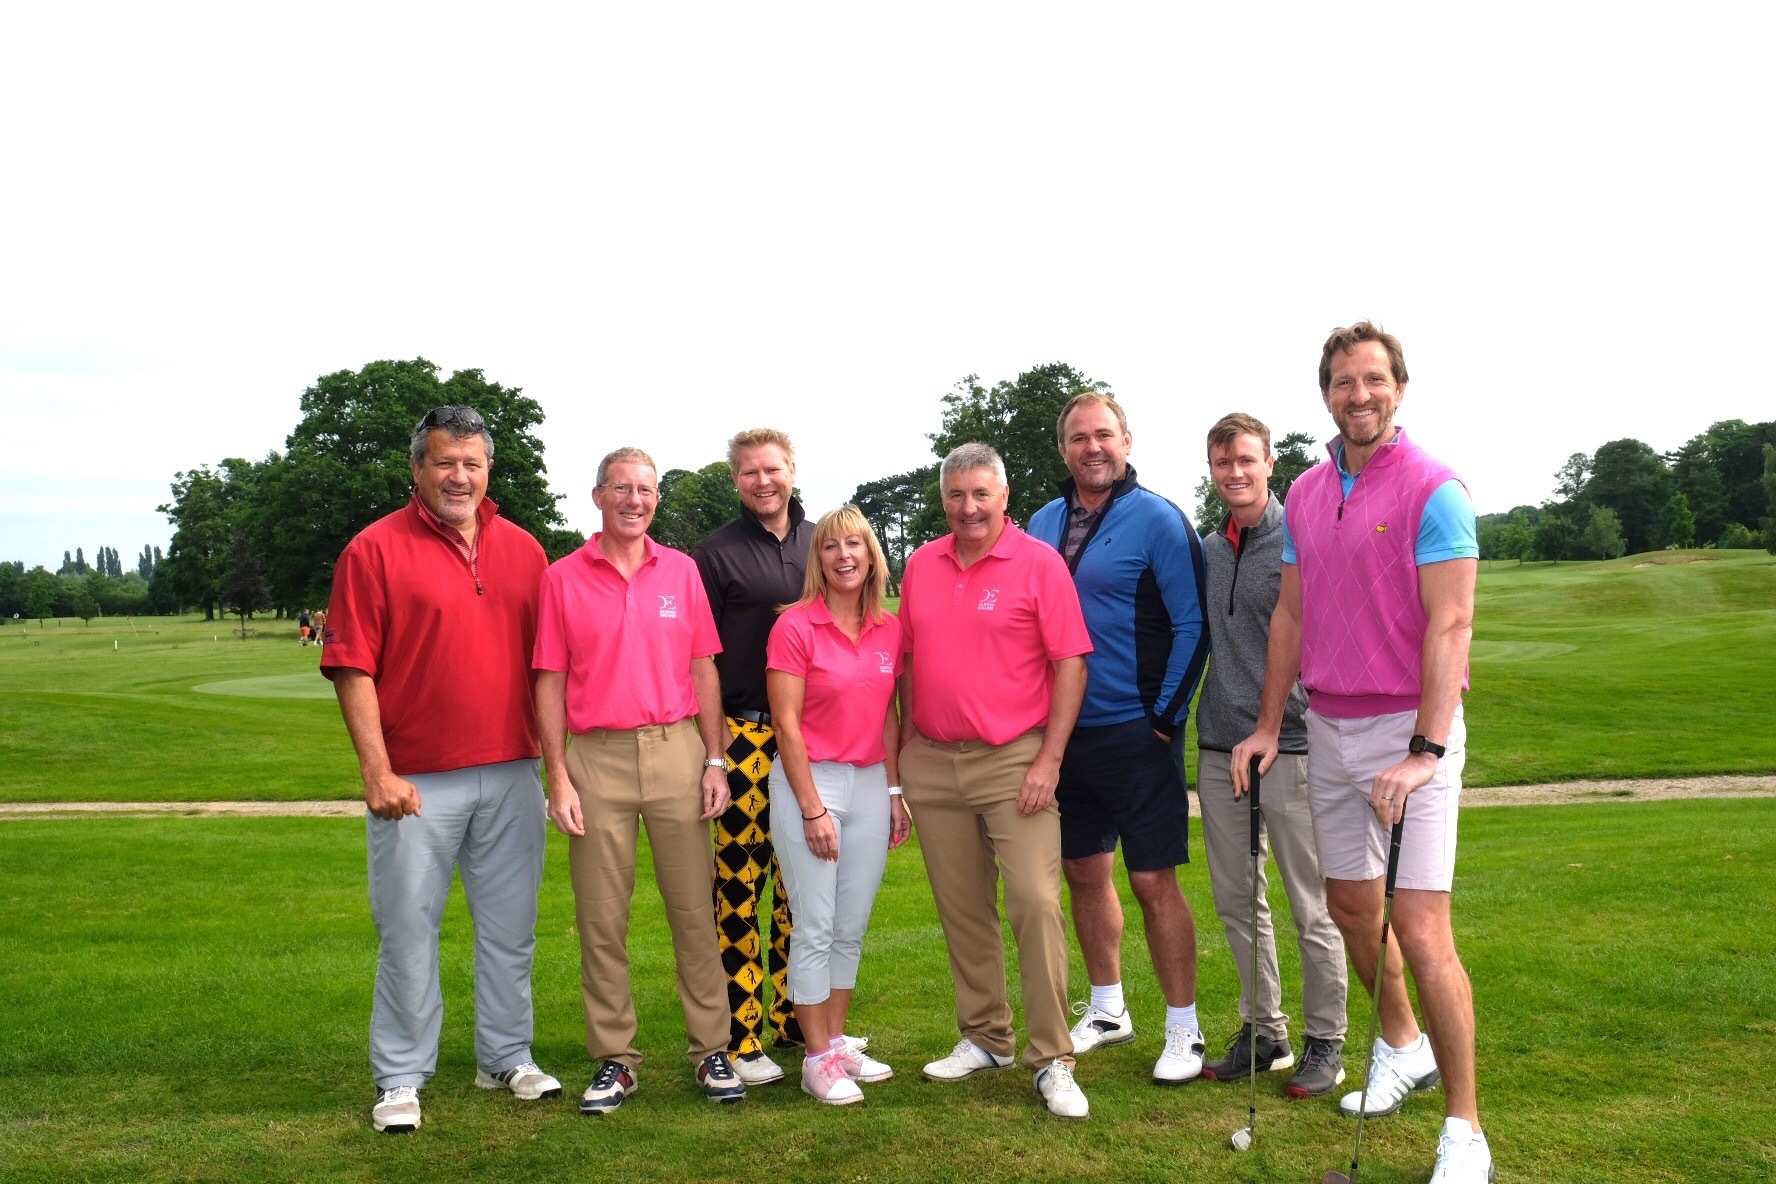 Participants at The Springs Golf Club's charity included (from left): Zinzan Brooke, James Penney (Darwin), Matthew Hoggard, Lindsey Esse (Darwin), Anthony Esse (Darwin), Scott Quinnell, Nick Gubbins and Will Greenwood